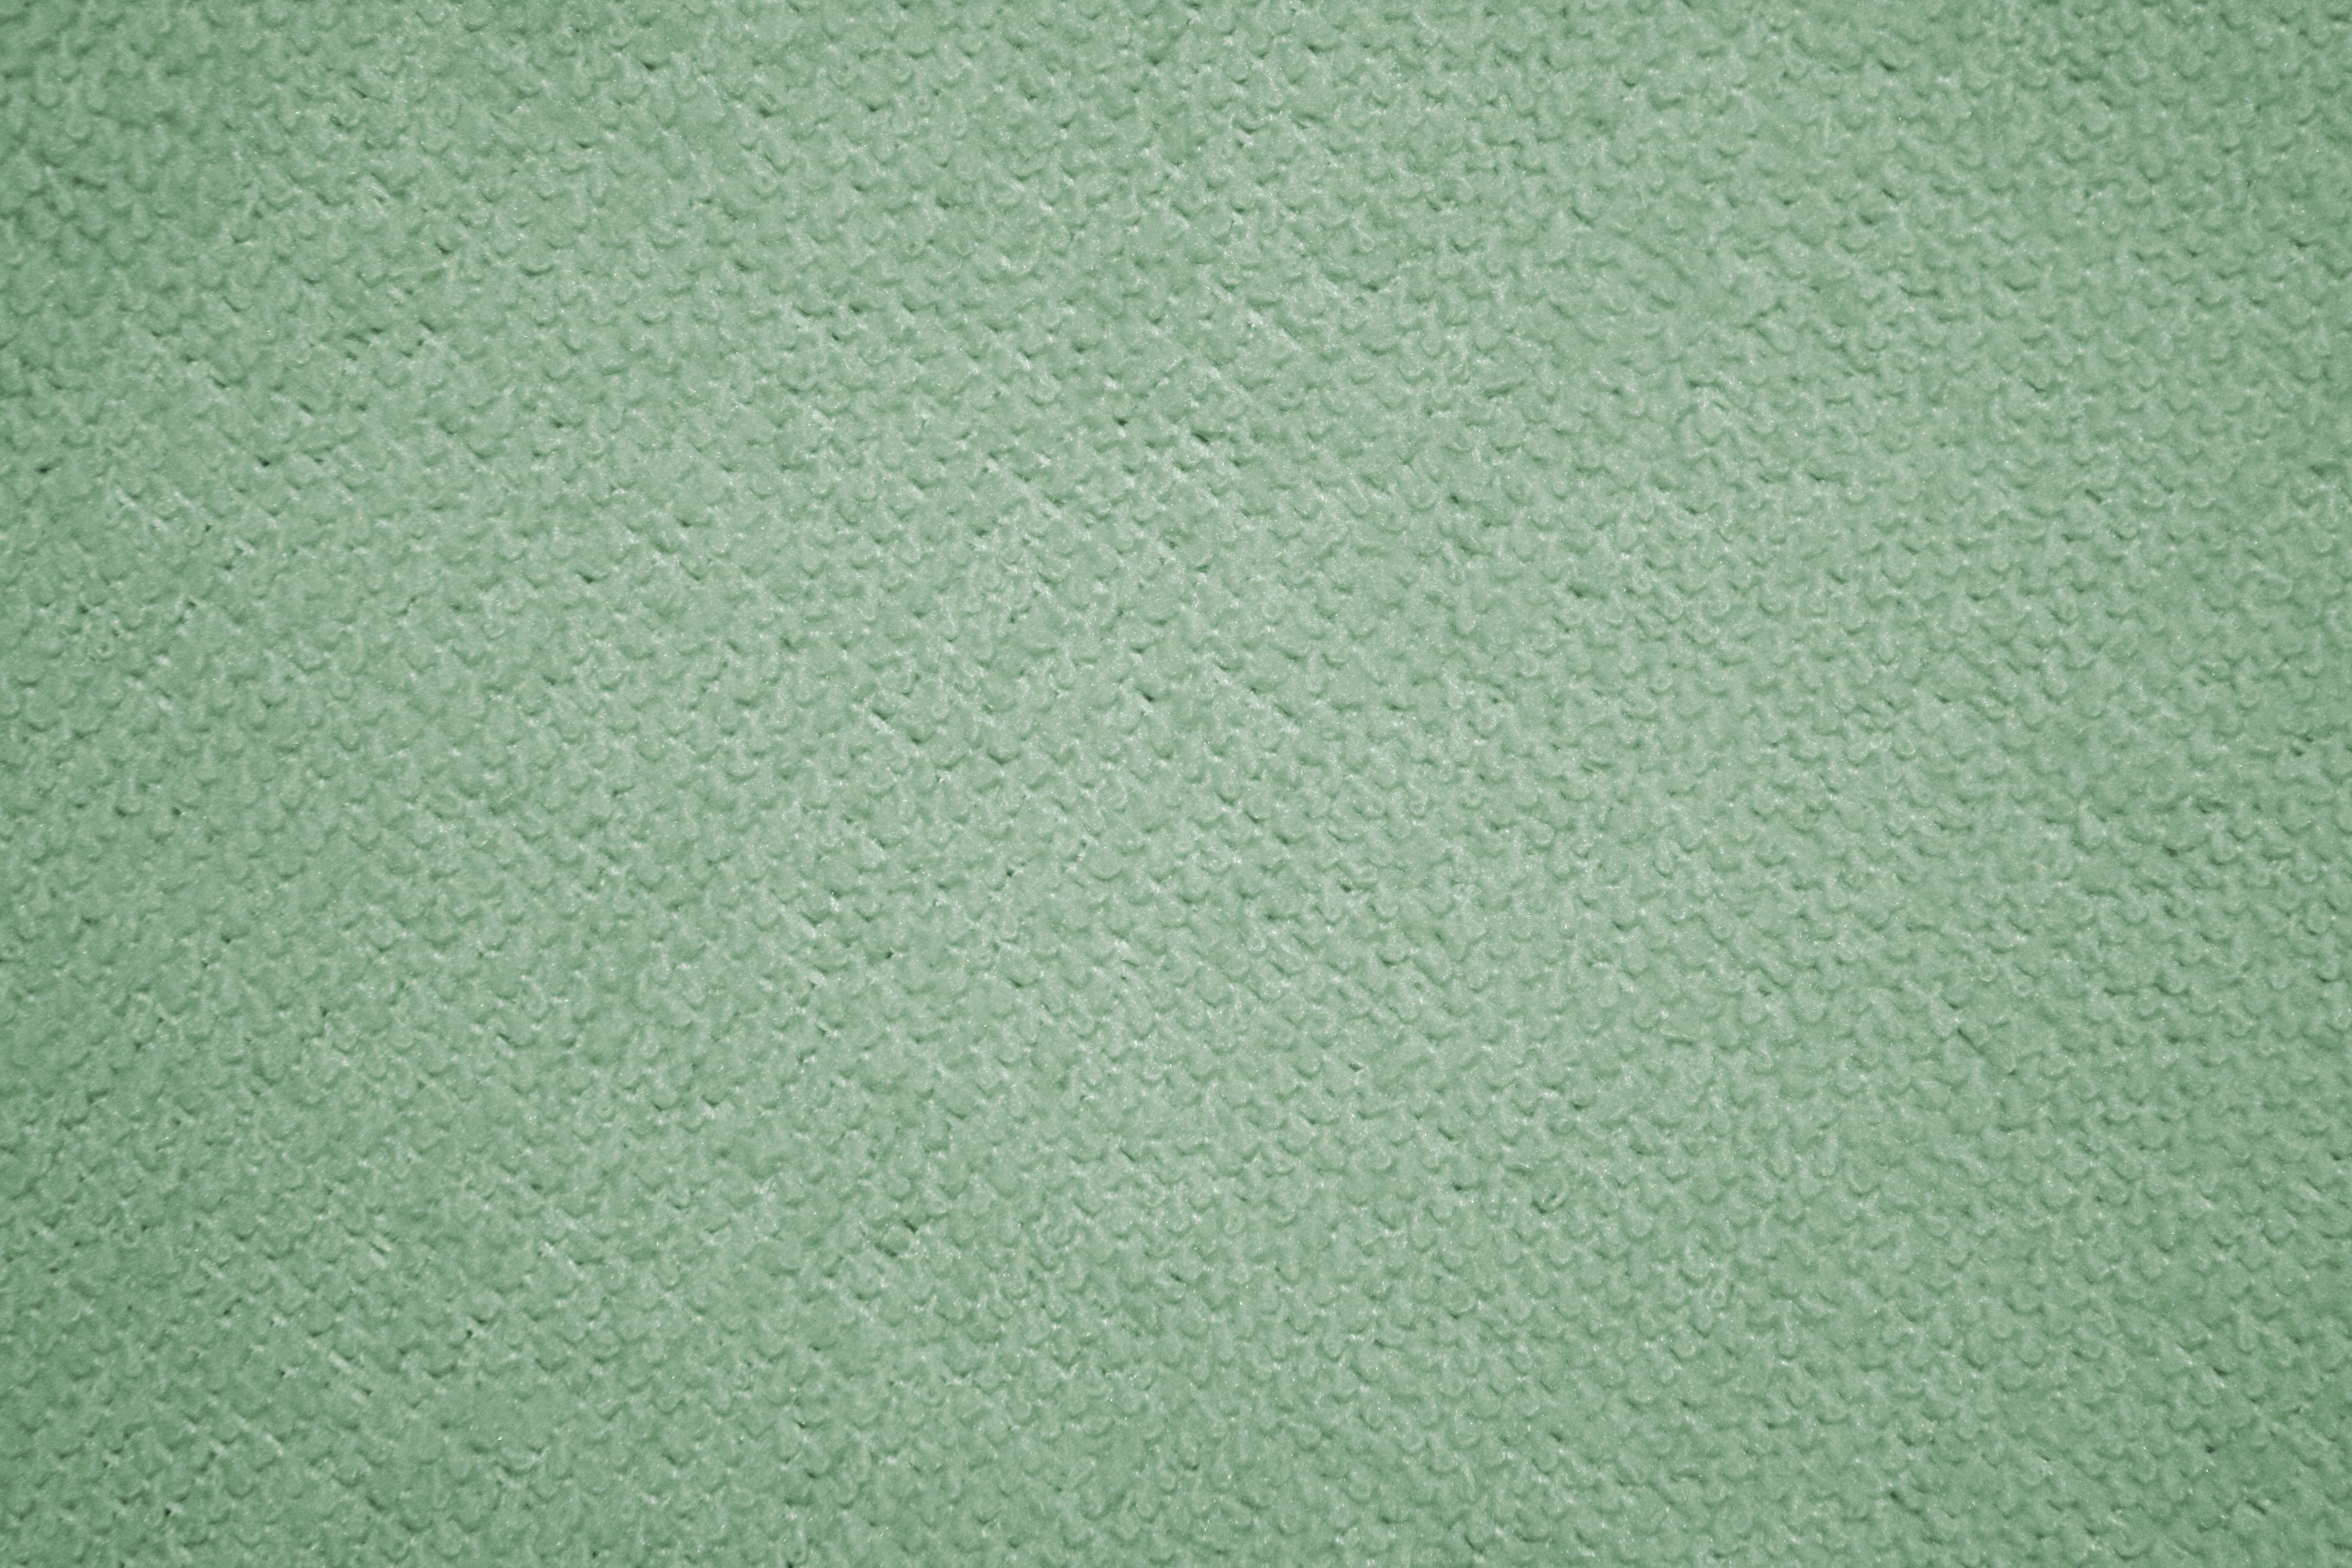 Sage Green Microfiber Cloth Fabric Texture Picture Free